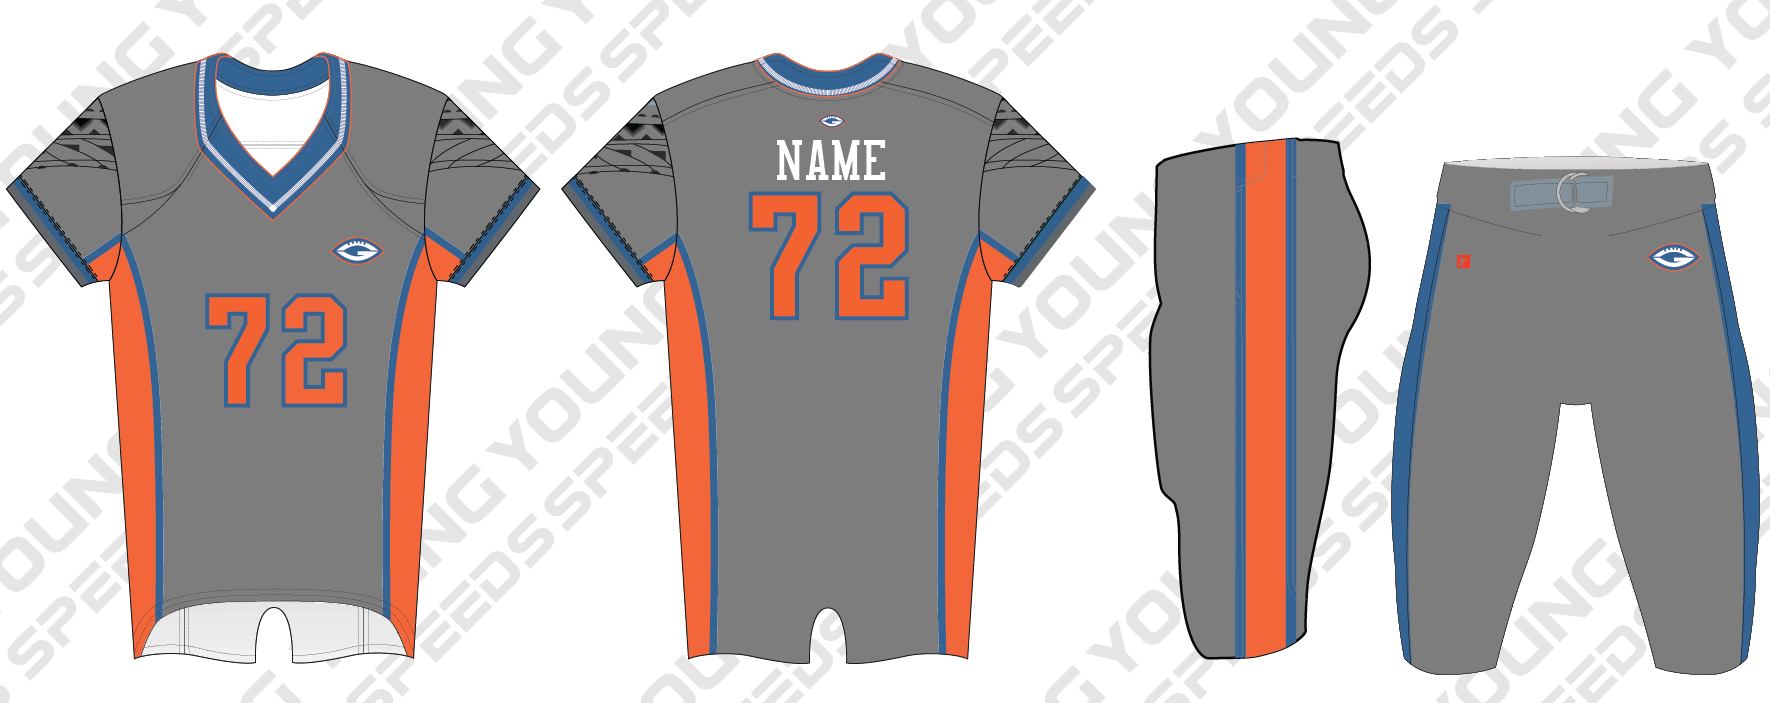 Team Giants Custom Sublimated Football Uniforms - SAMPLE ORDER - YoungSpeeds